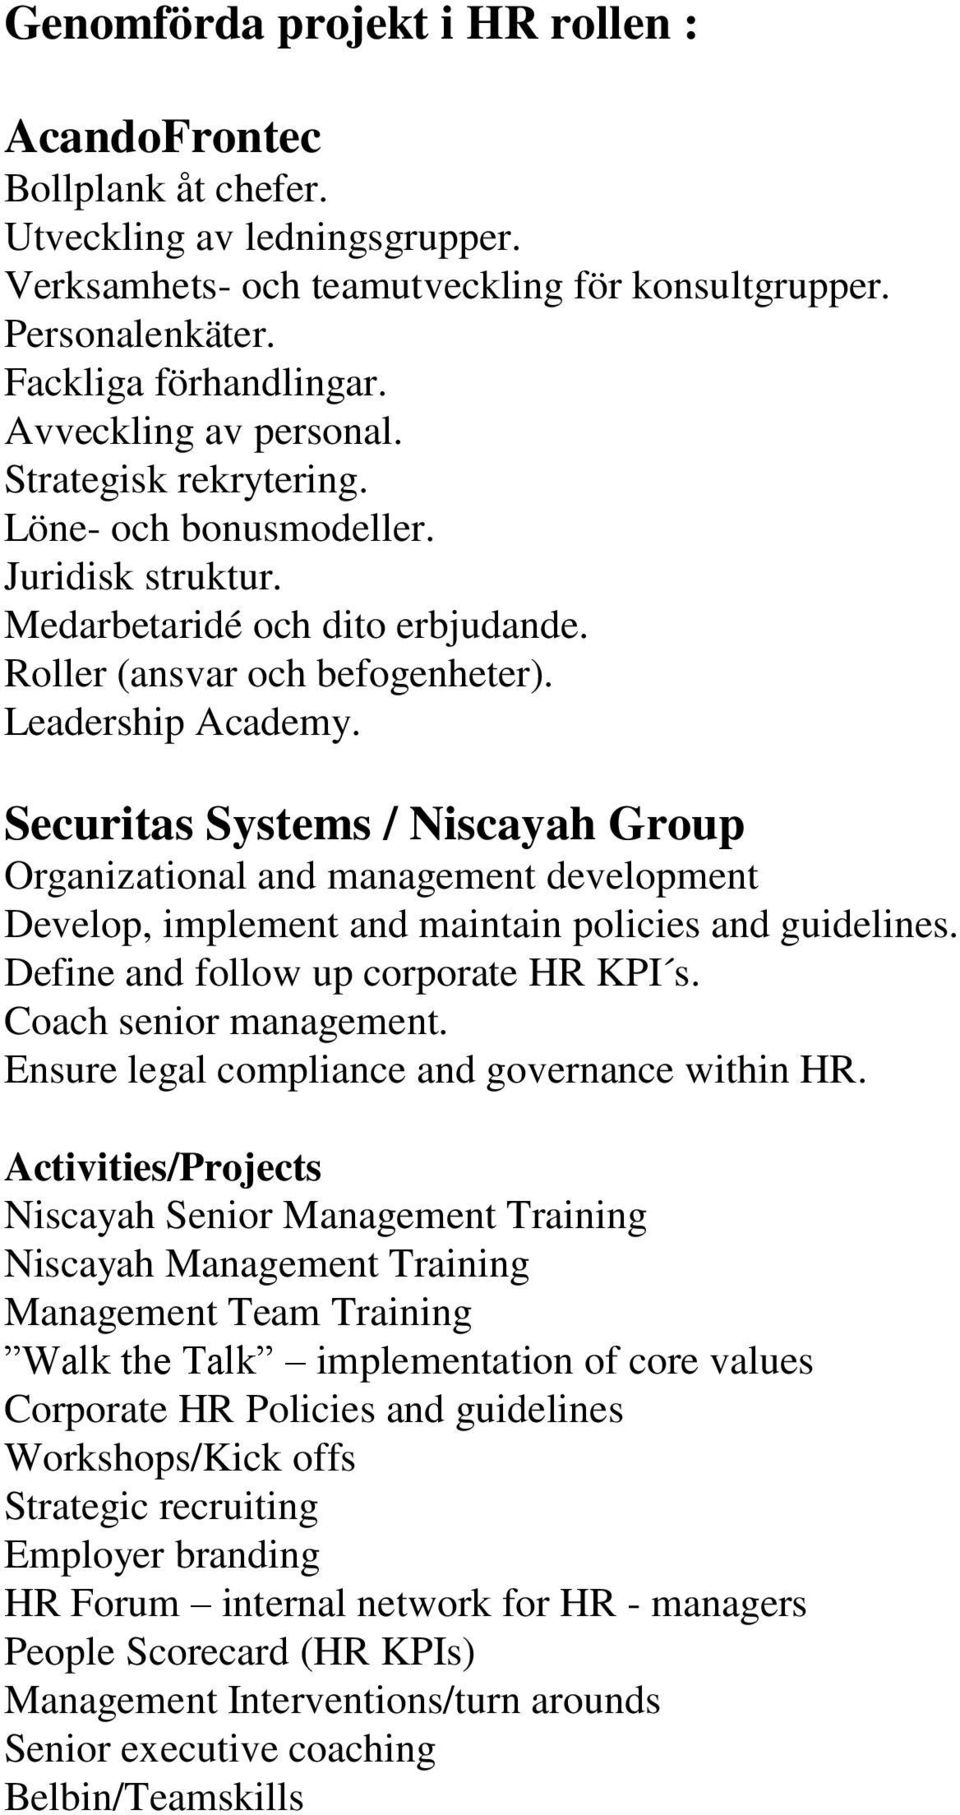 Securitas Systems / Niscayah Group Organizational and management development Develop, implement and maintain policies and guidelines. Define and follow up corporate HR KPI s. Coach senior management.